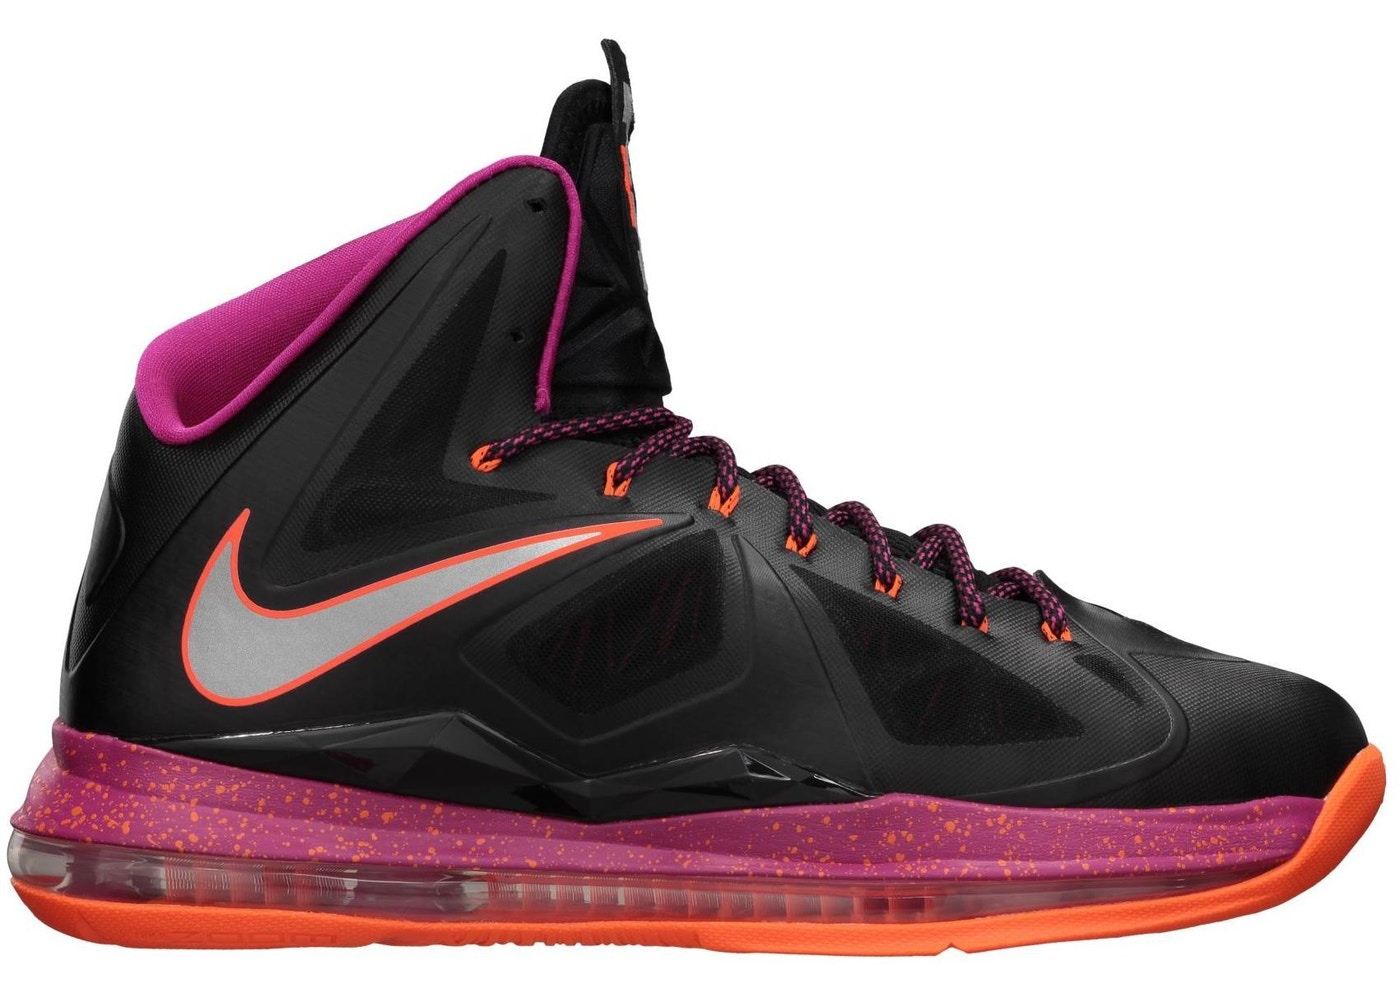 competitive price 6de3a 14e6b Buy Nike LeBron 10 Shoes   Deadstock Sneakers